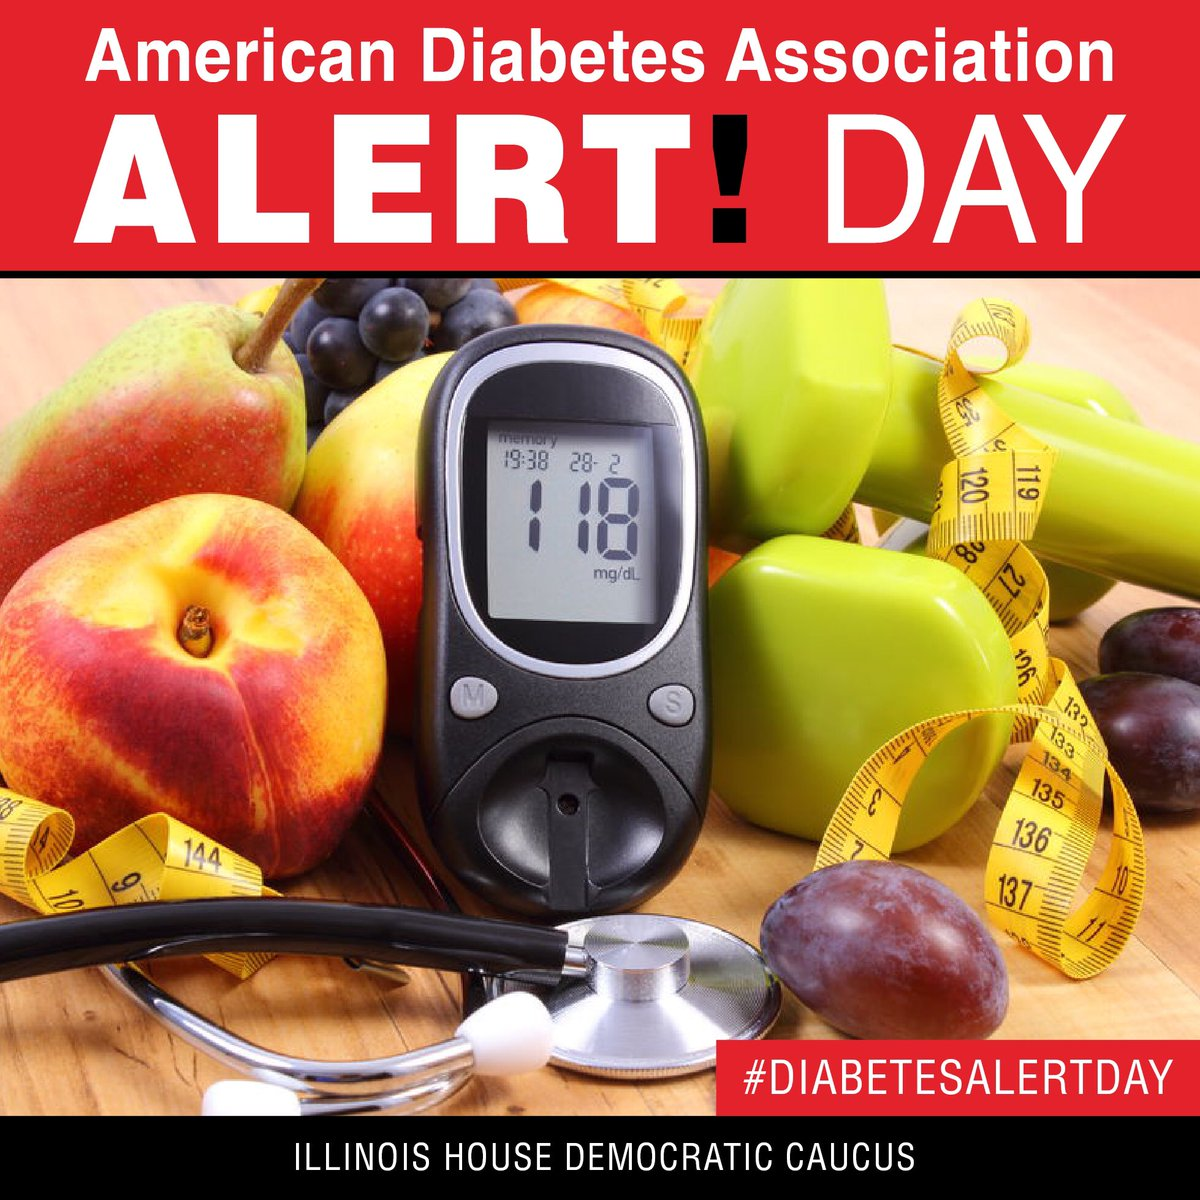 test Twitter Media - On #DiabetesAlertDay, we are raising awareness of risk factors associated with type 2 diabetes, such as family history, weight, &inactivity. https://t.co/mvNJYvVCyT